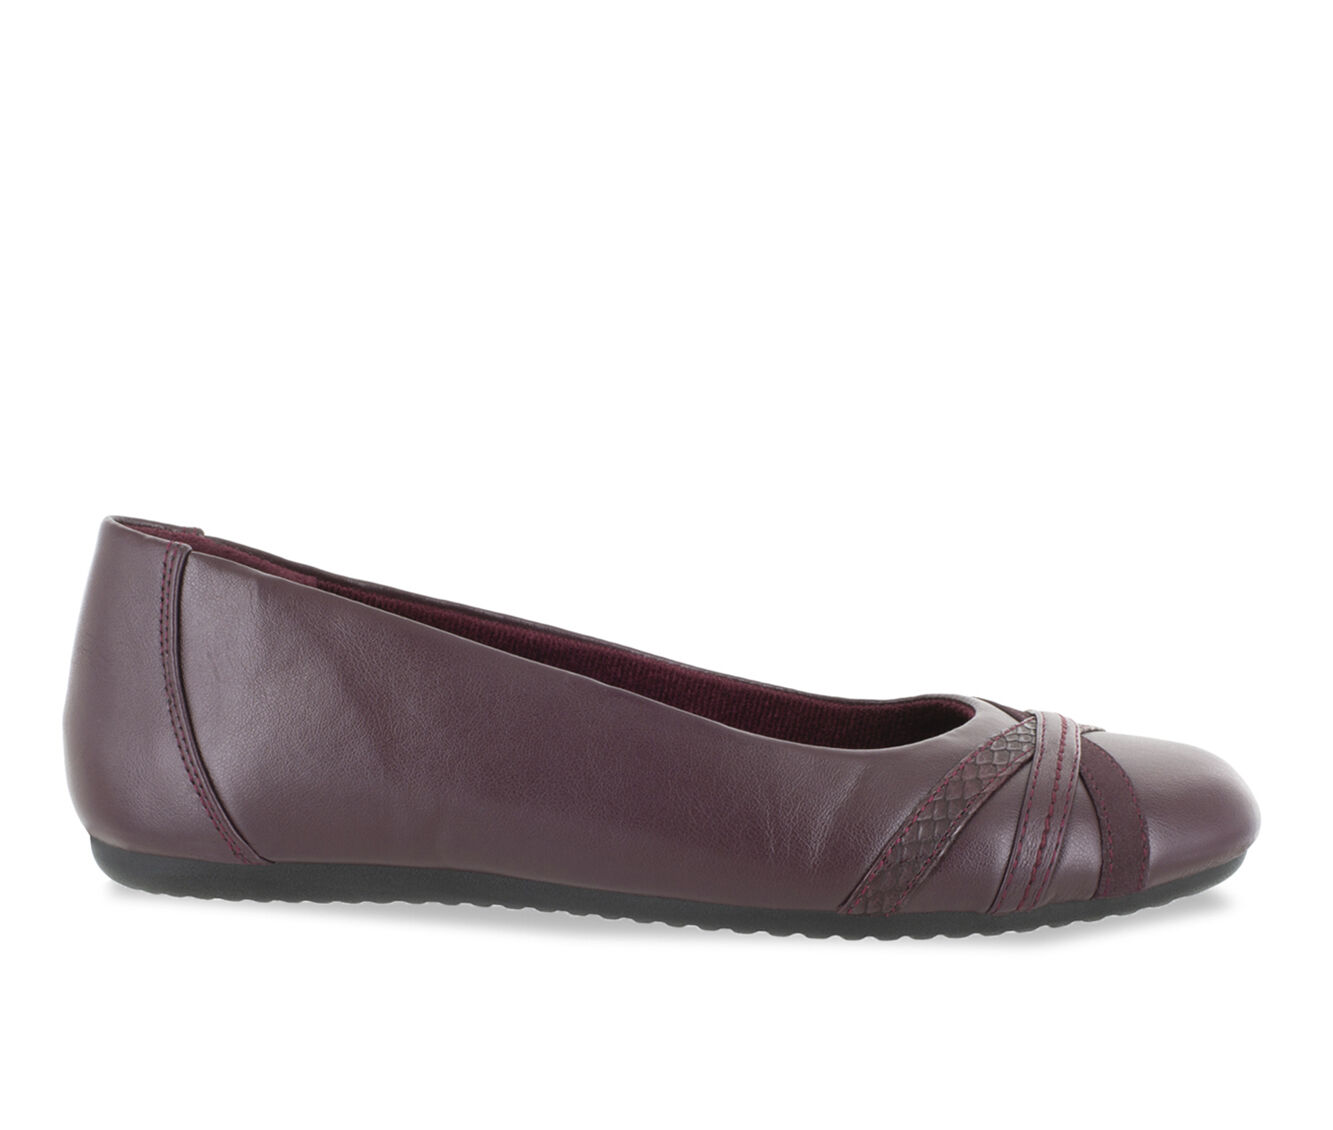 Women's Easy Street Derry Shoes Burgandy